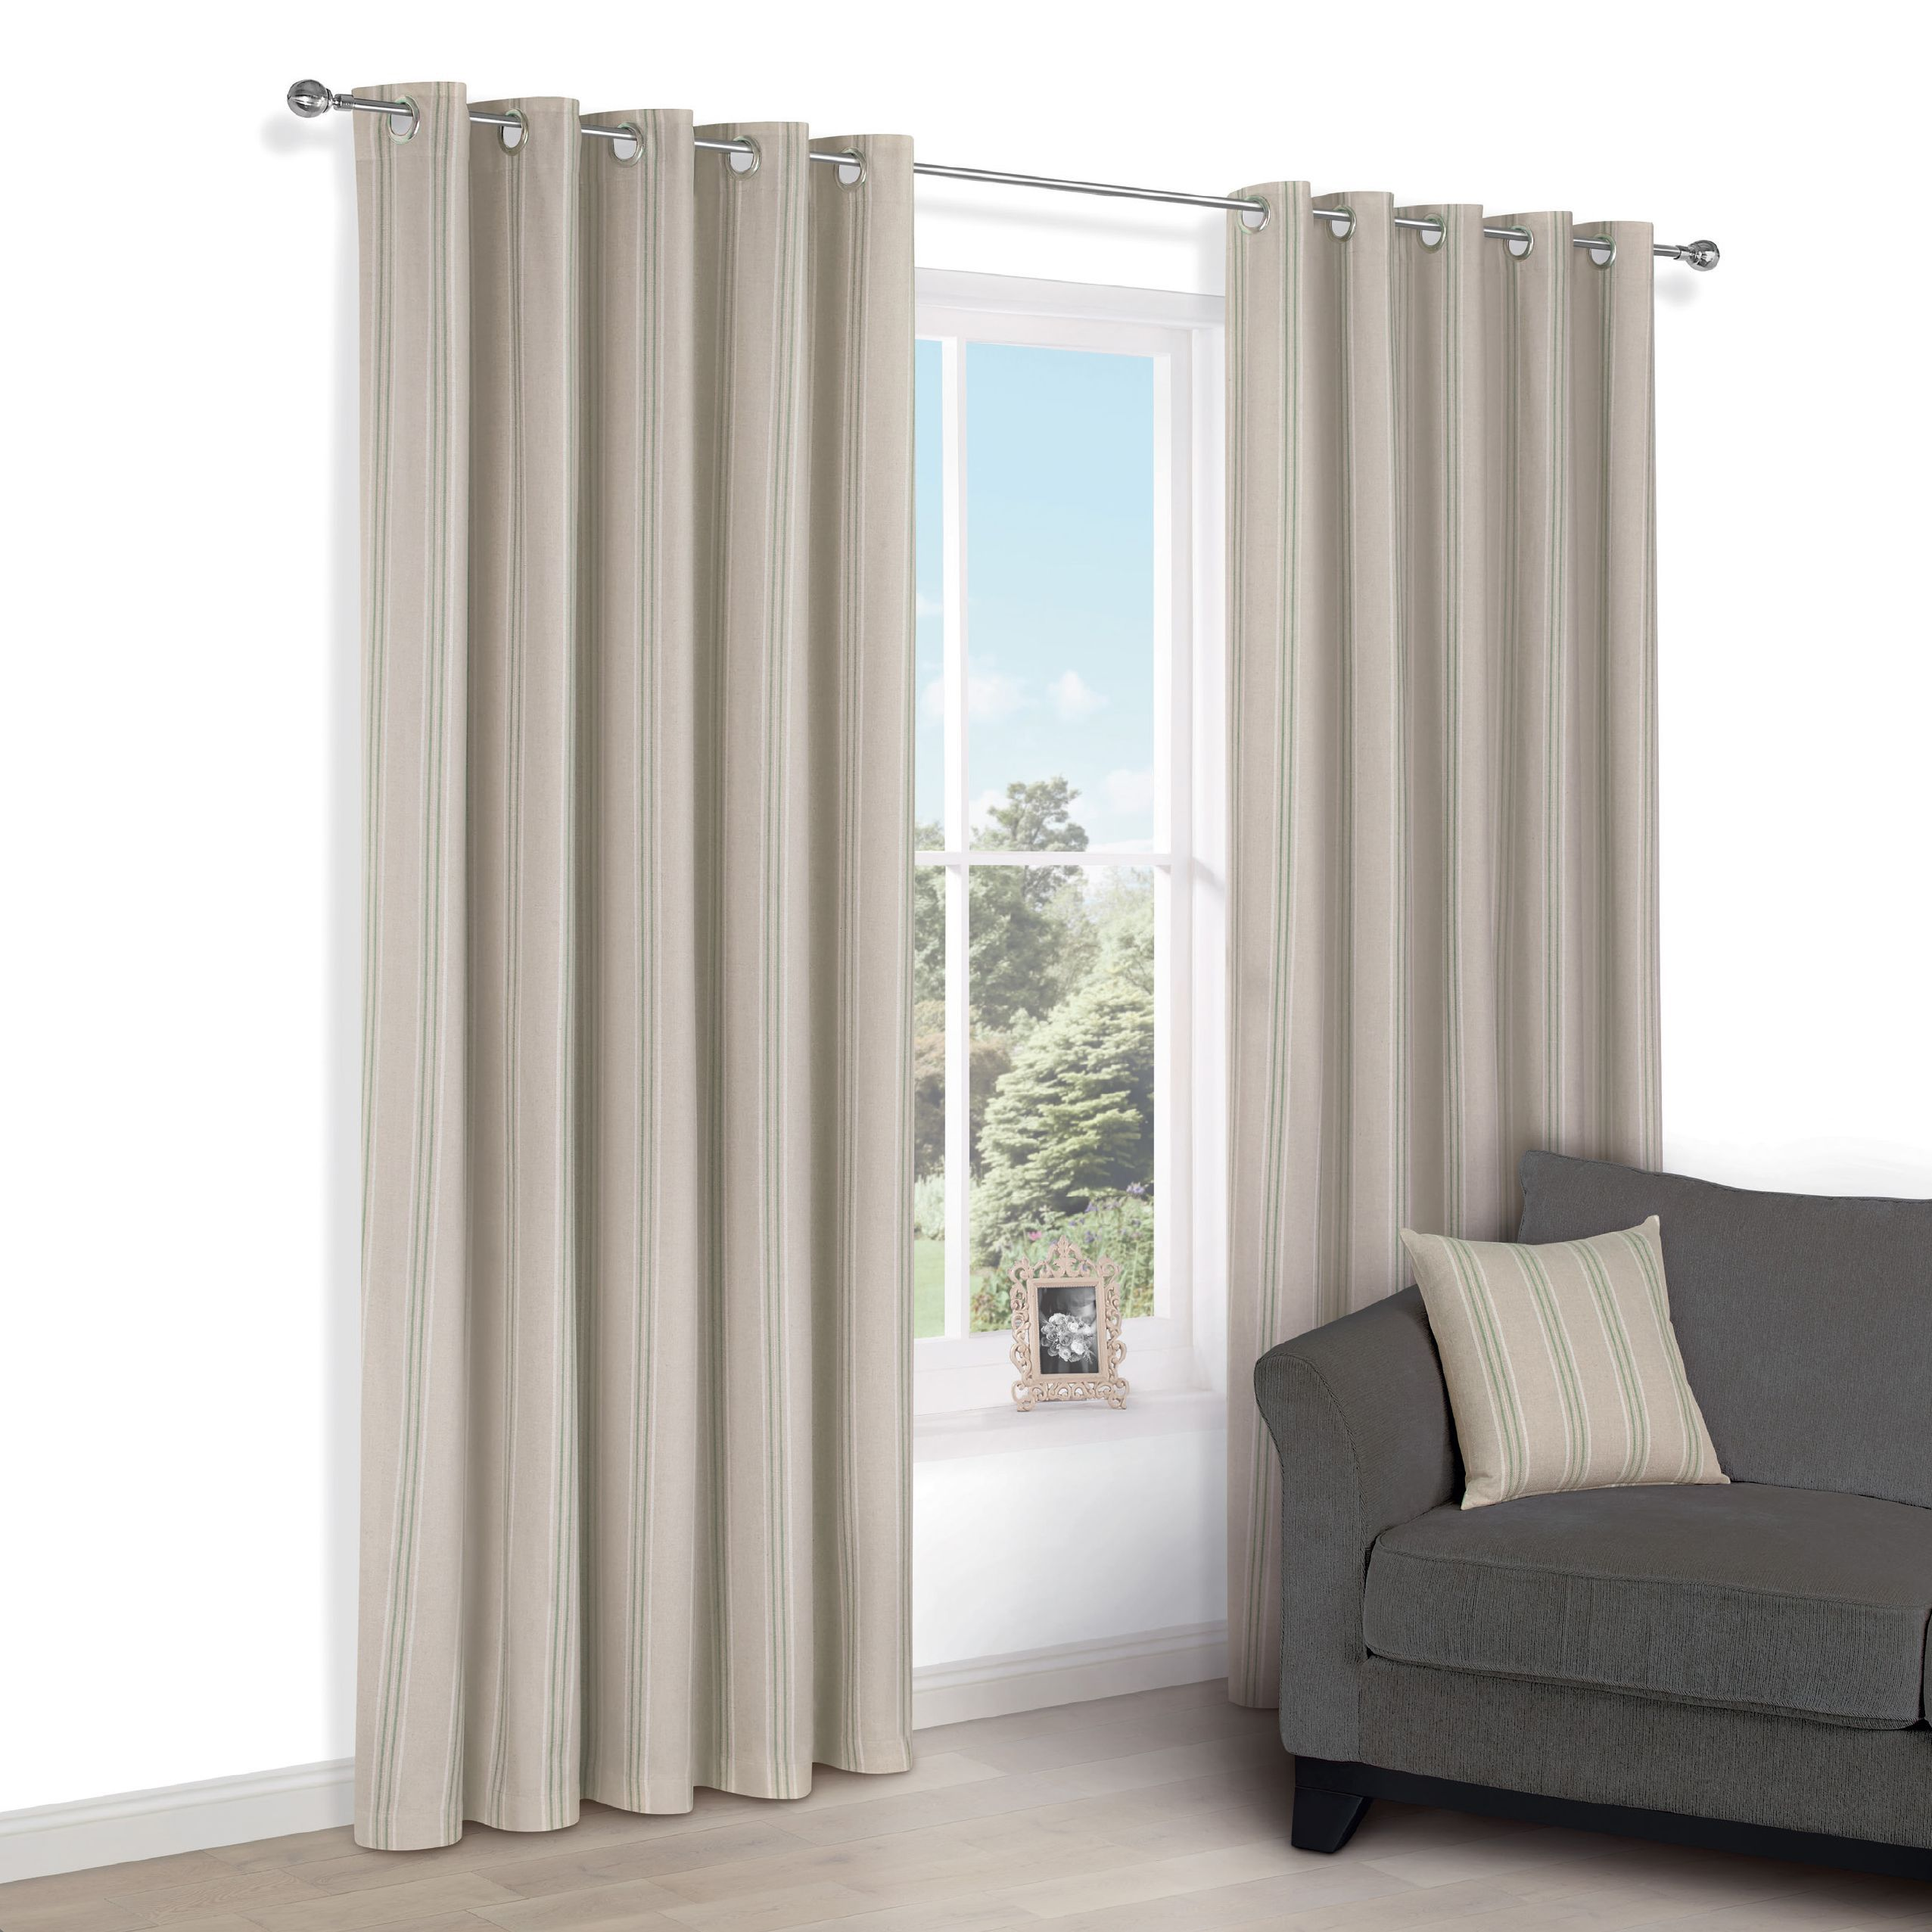 Chaylea Green Stripe Eyelet Lined Curtains (w)228cm (l)228cm